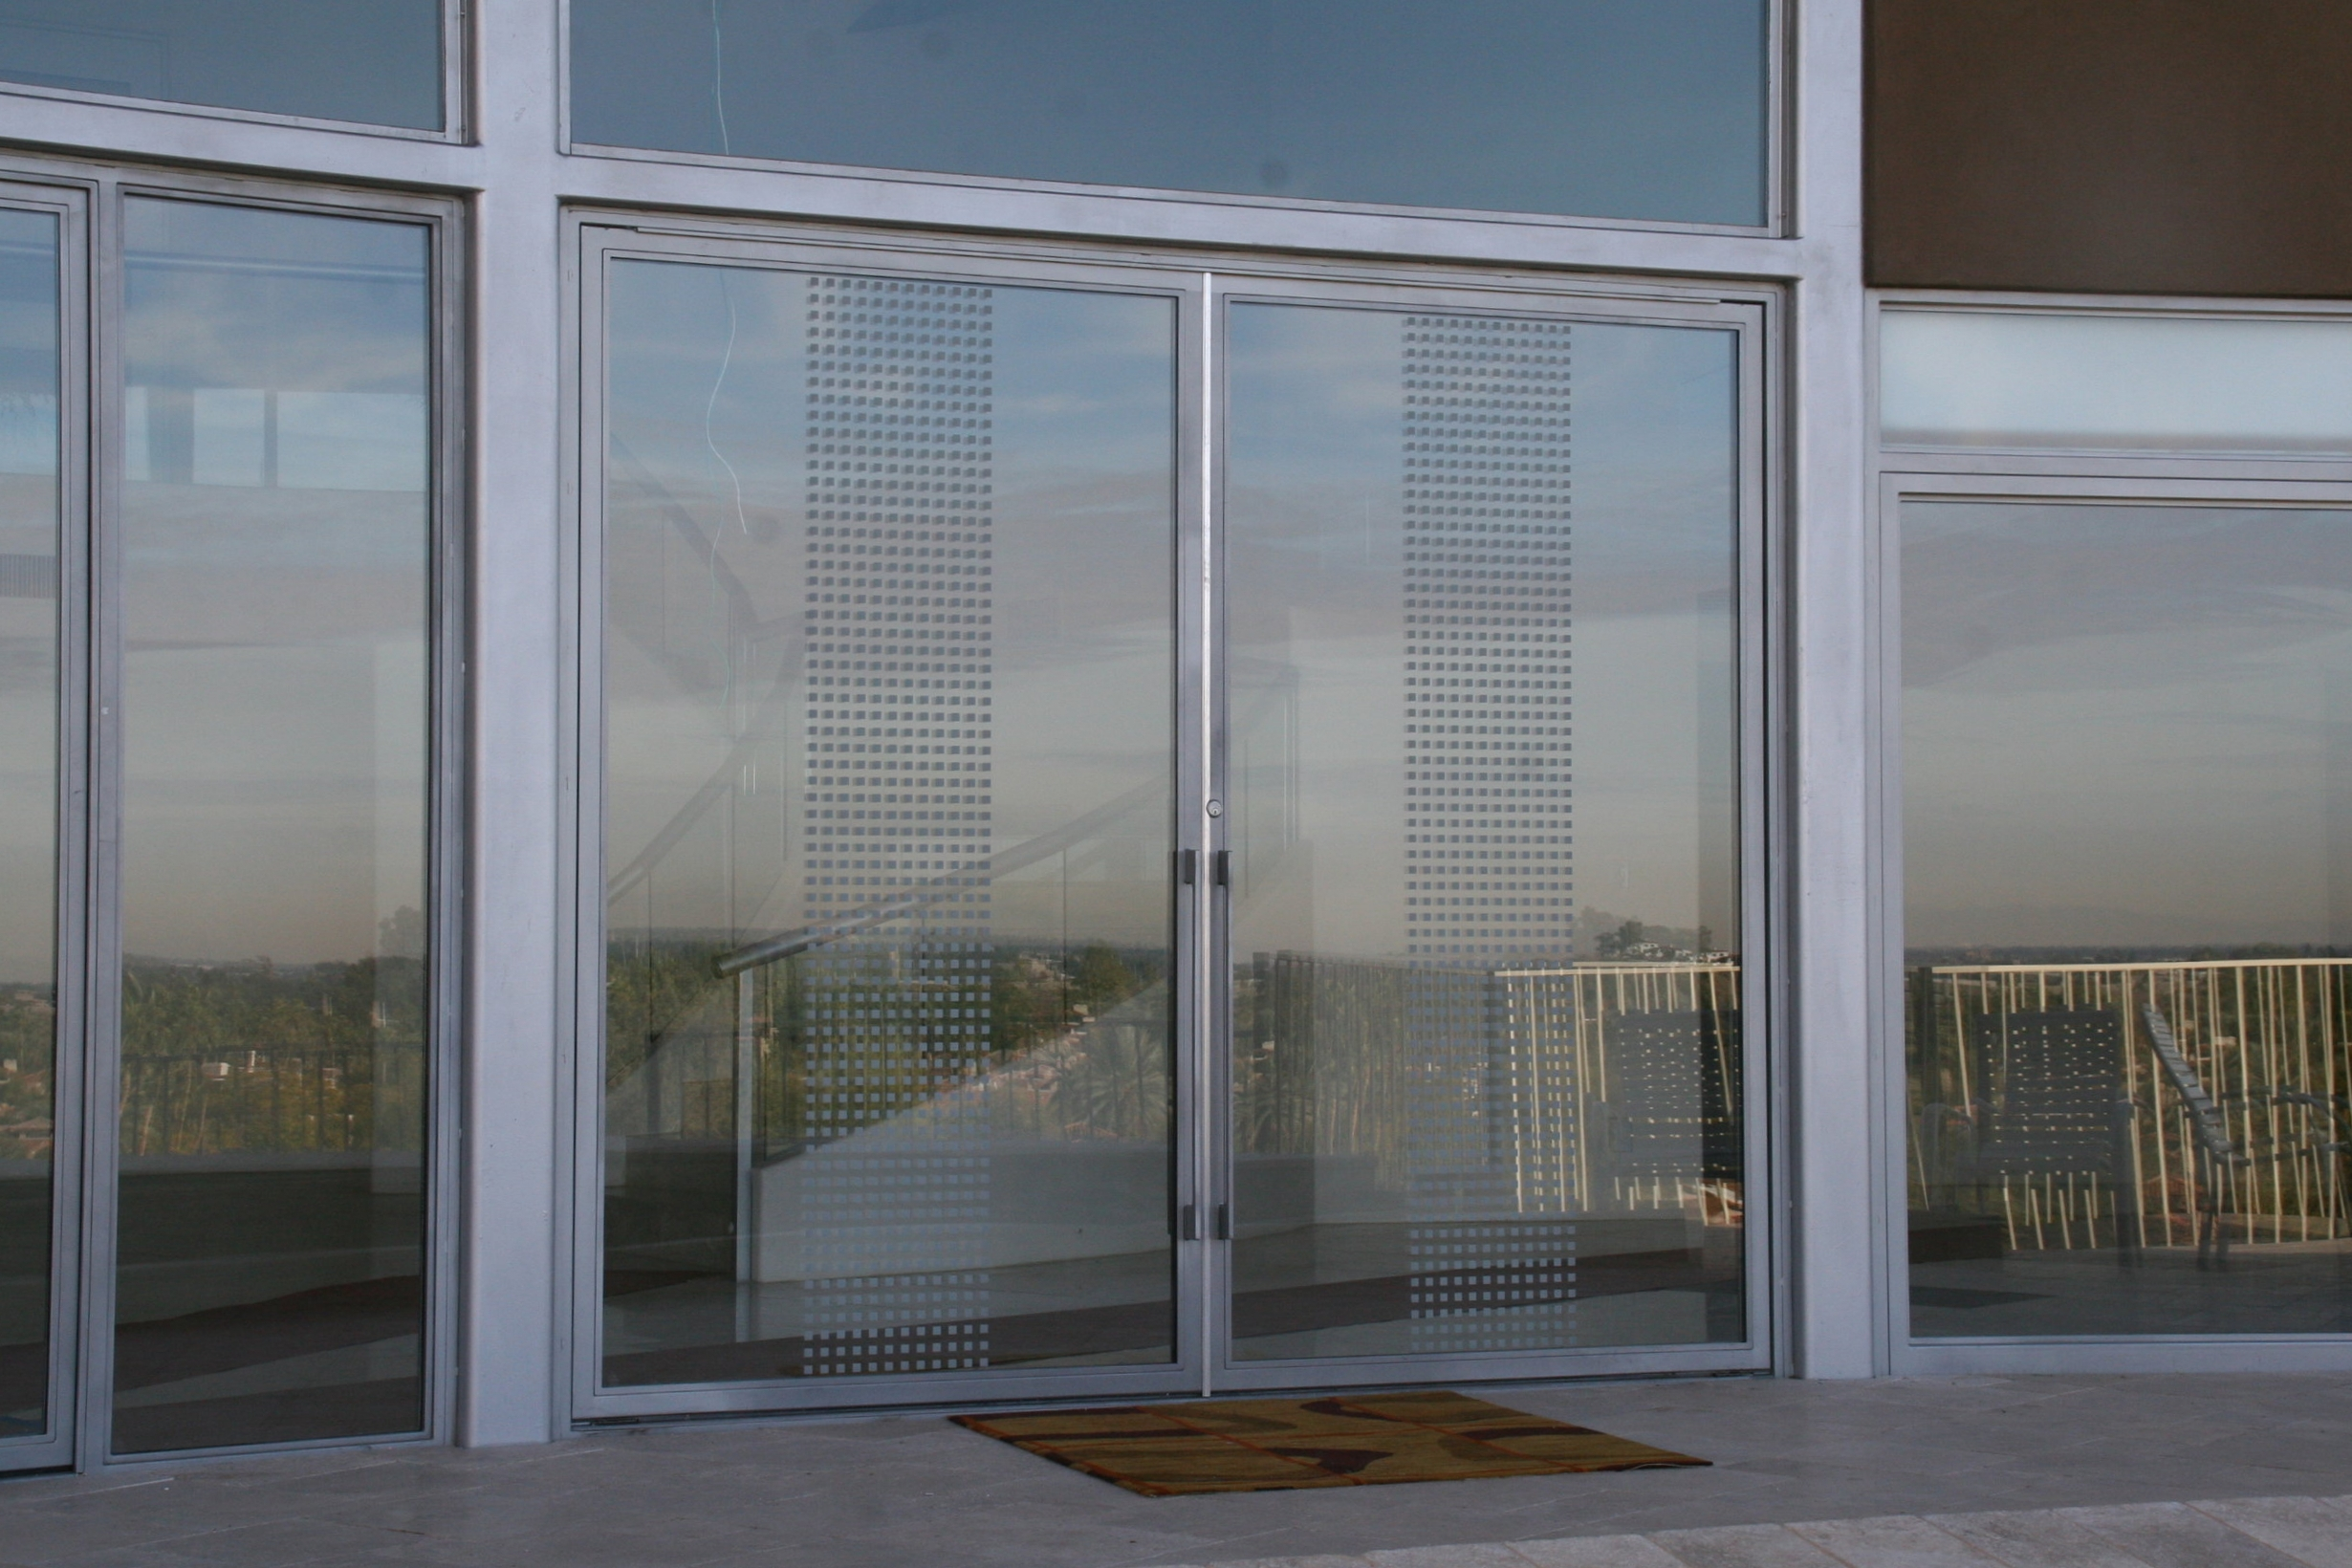 COMMERCIAL IRON AND GLASS DOOR 13